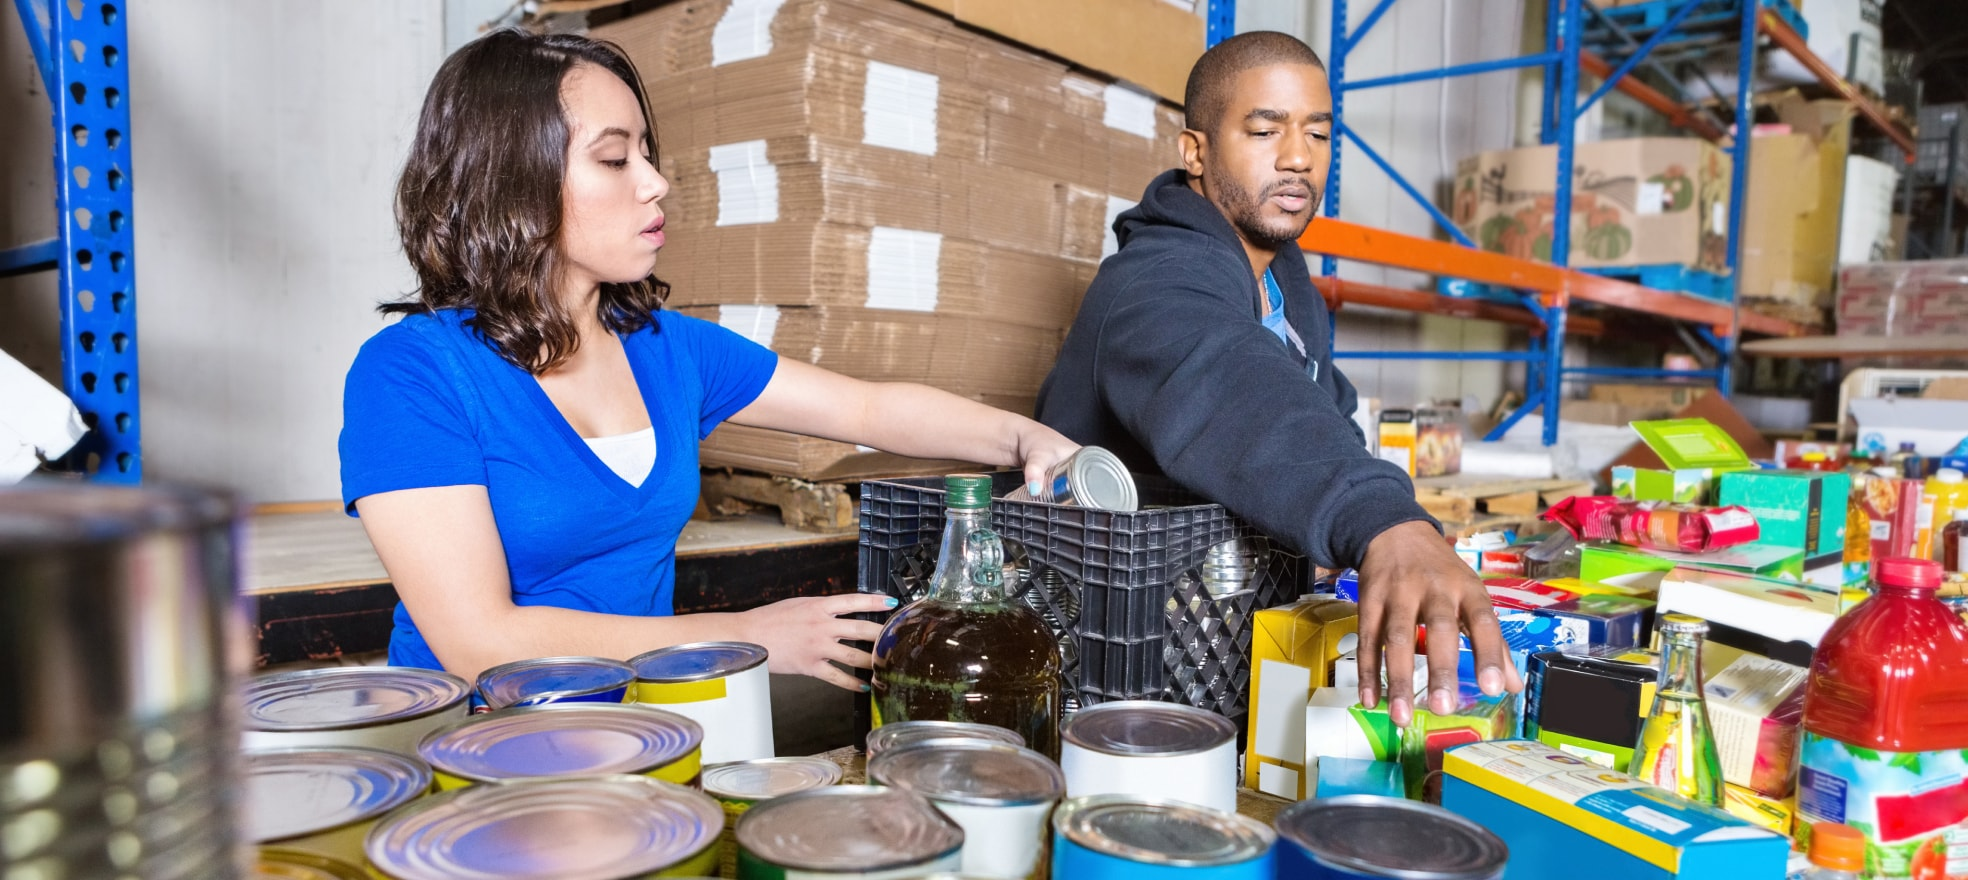 A woman and a man working together sorting cans of food in a warehouse.